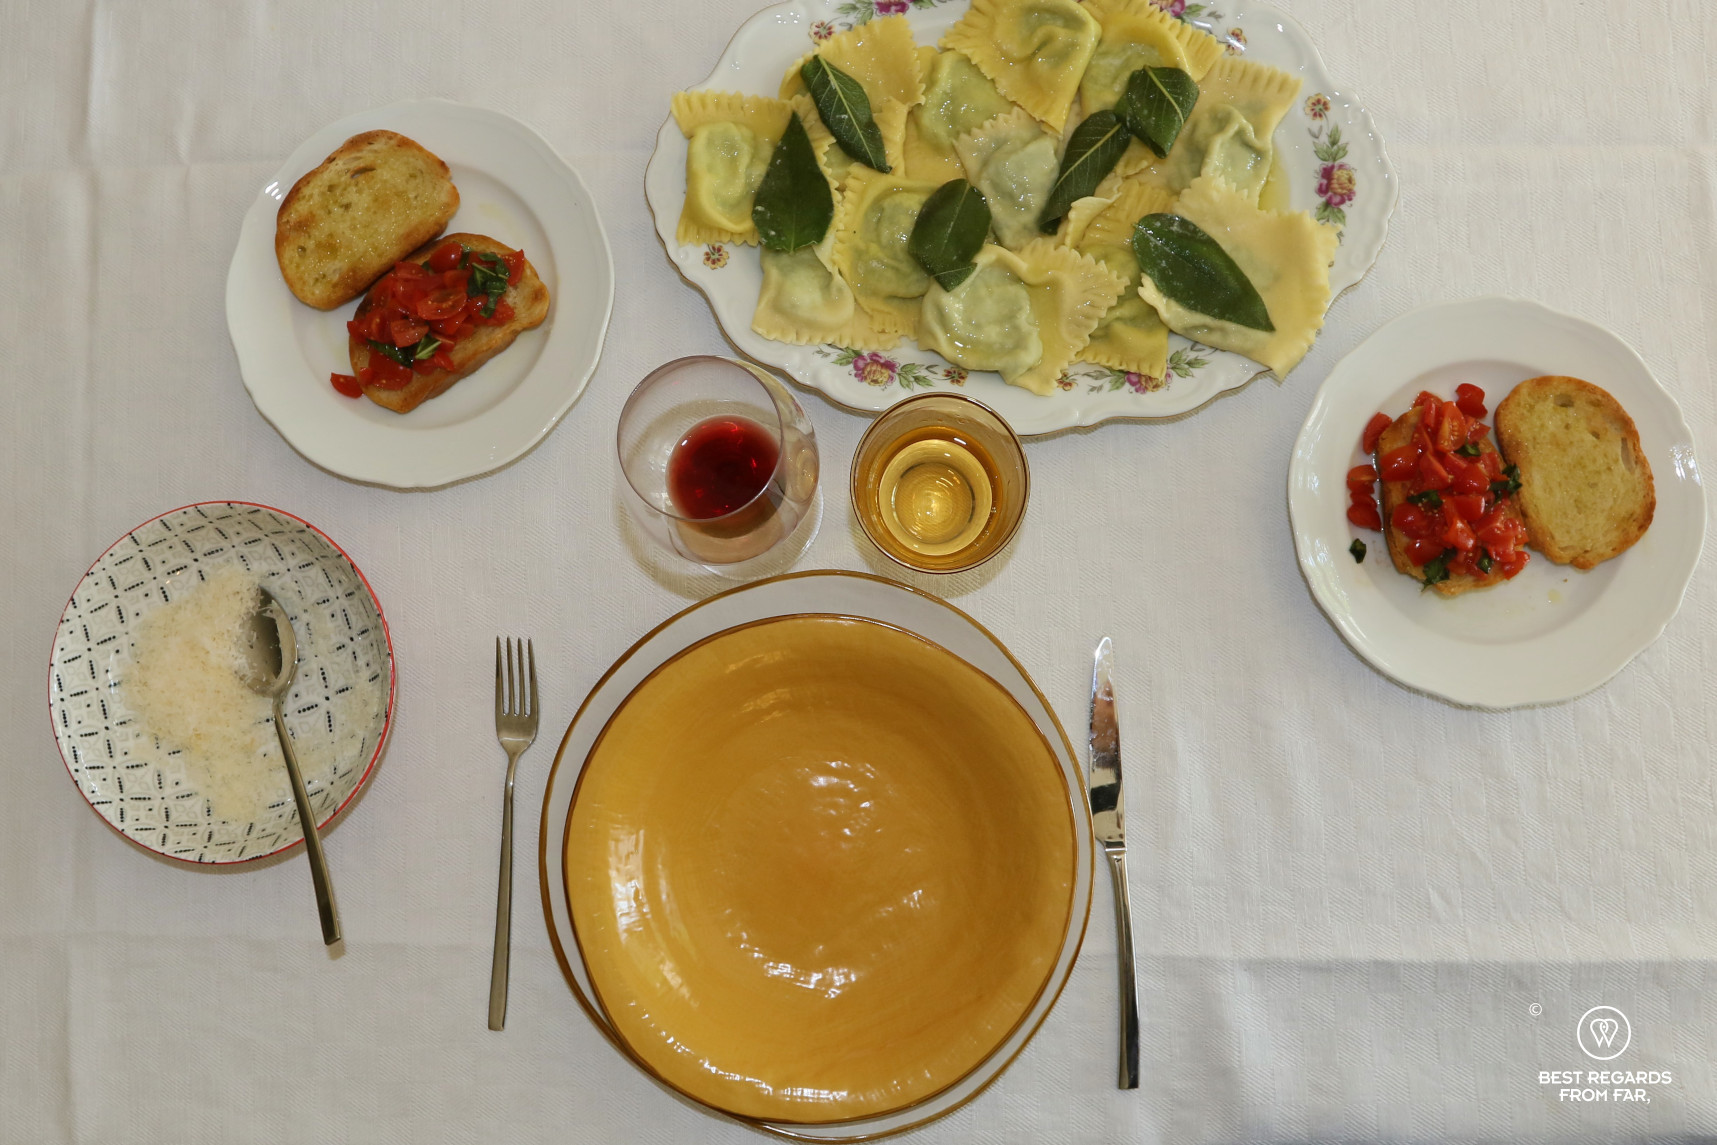 Fresh ravioli with sage sauce, bruschetta and a plate